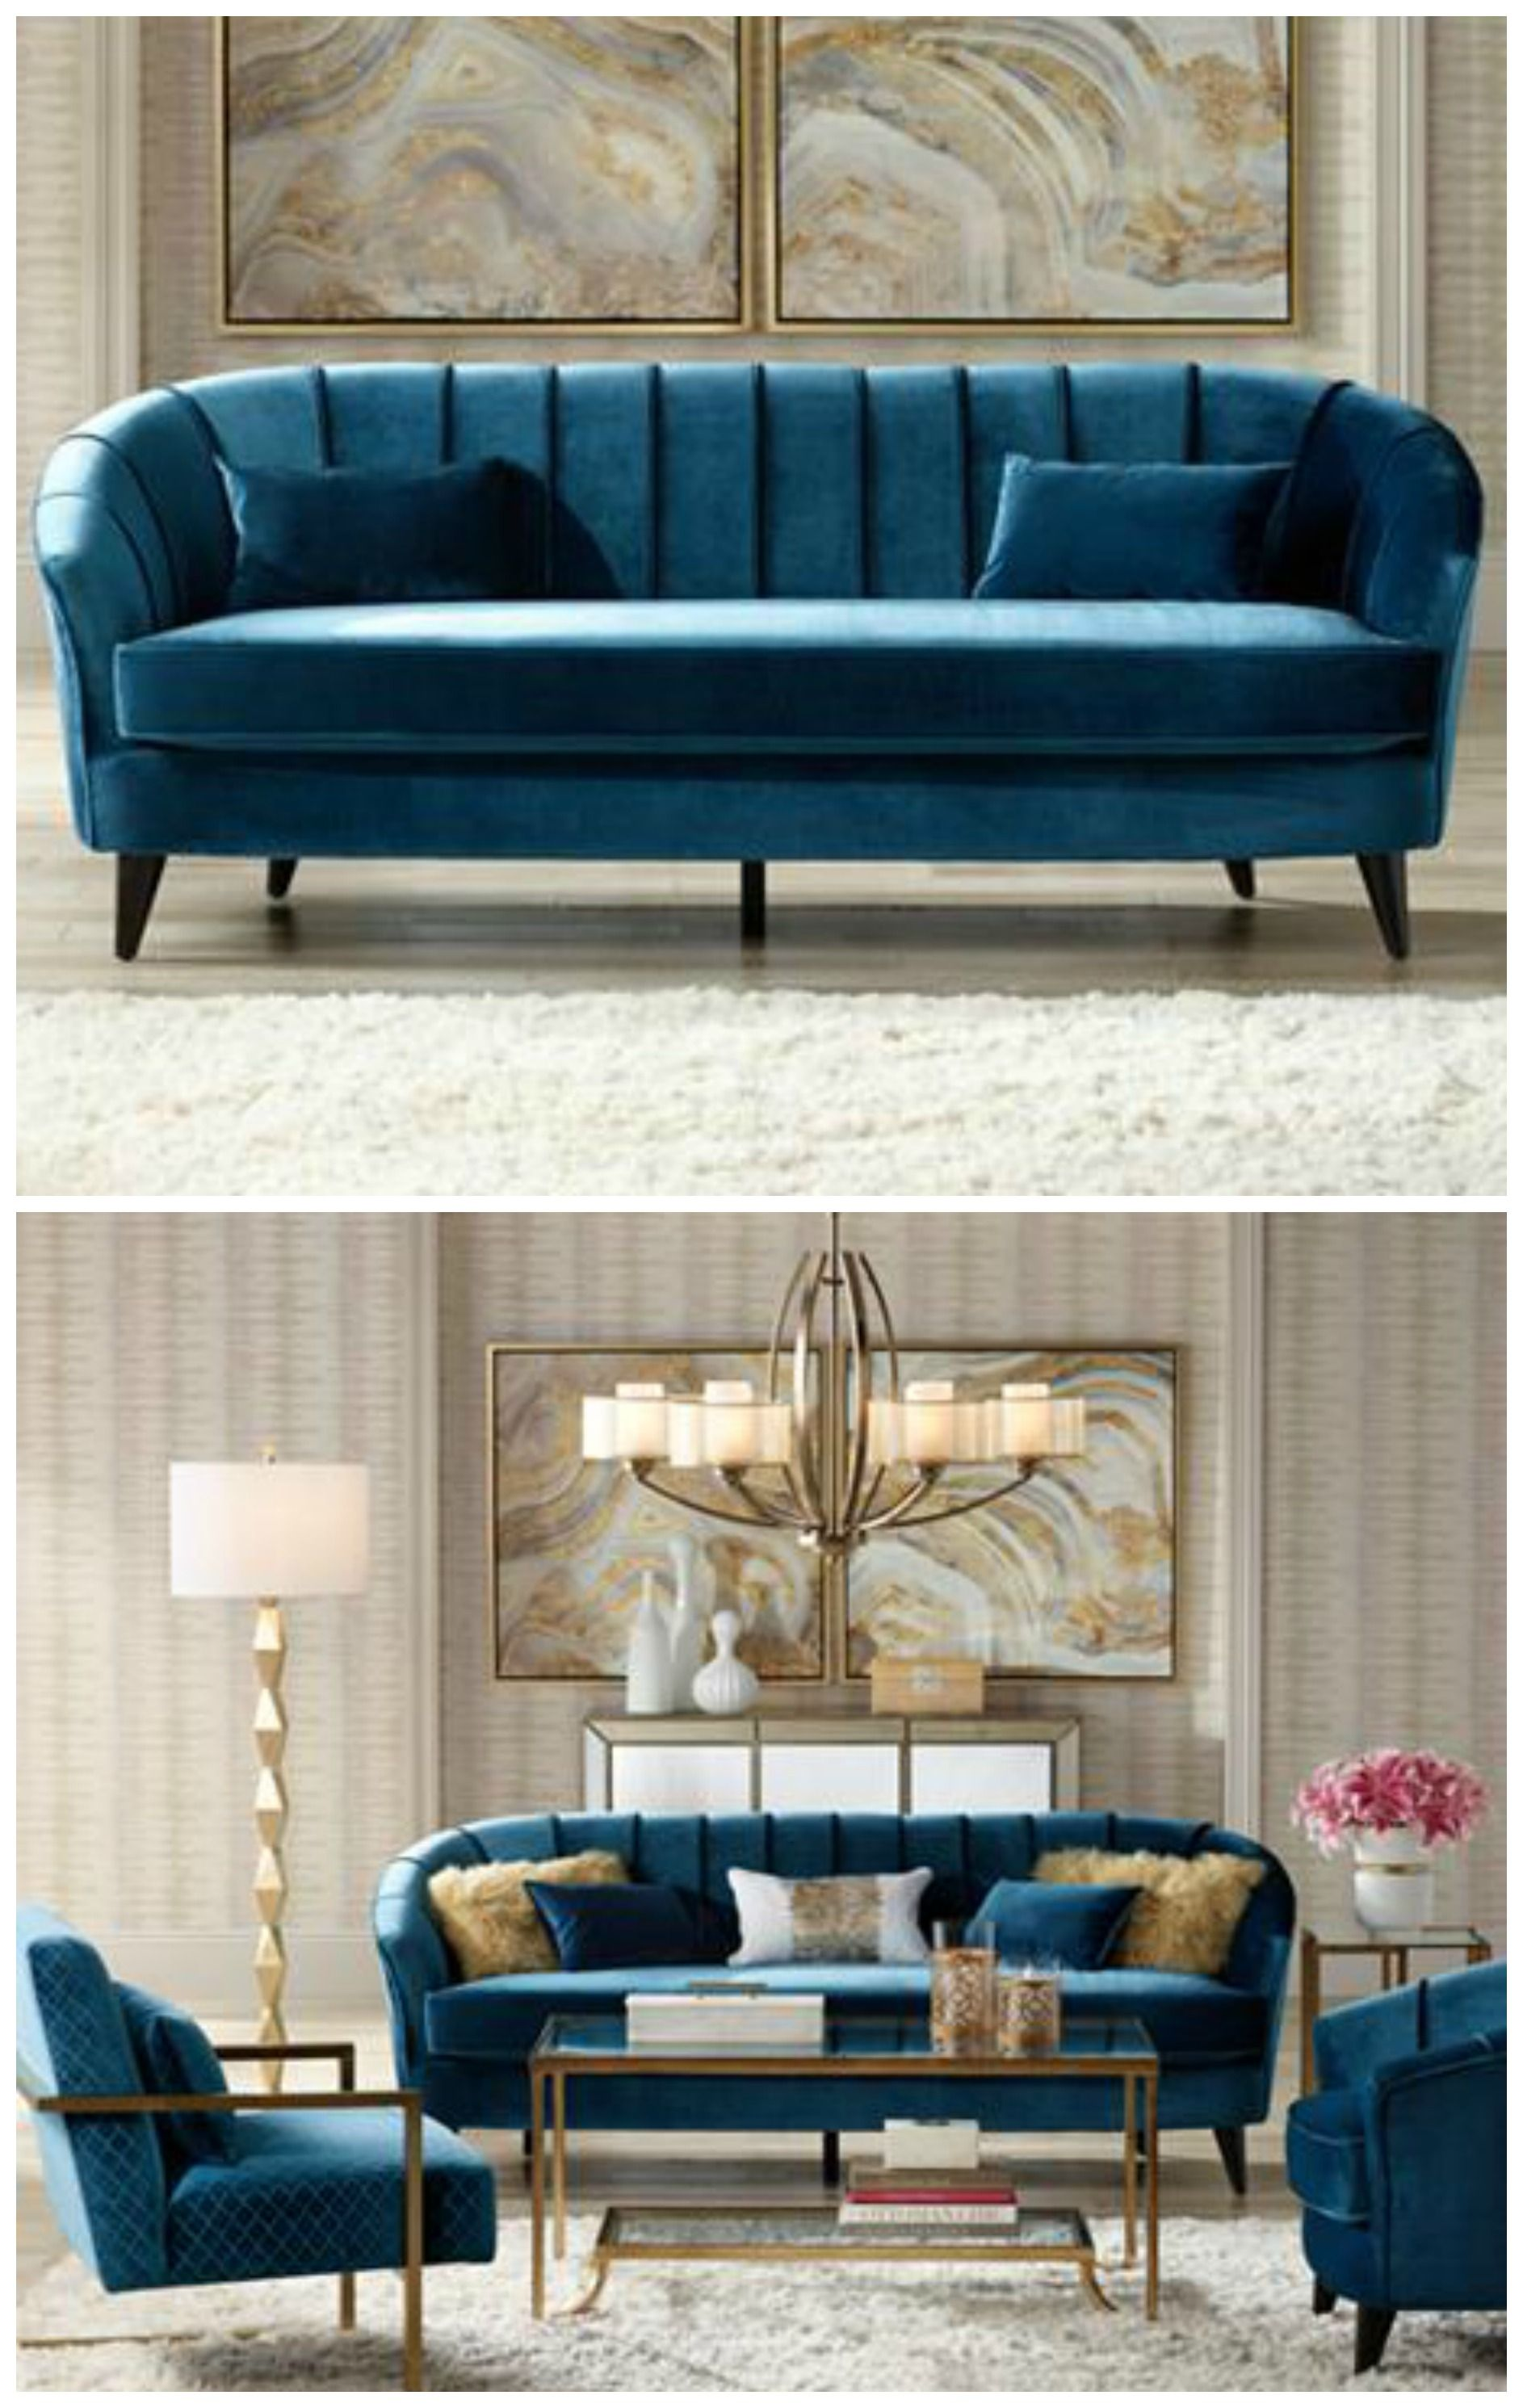 Add The Quot Wow Quot Factor To Your Home With This Bold Teal Blue